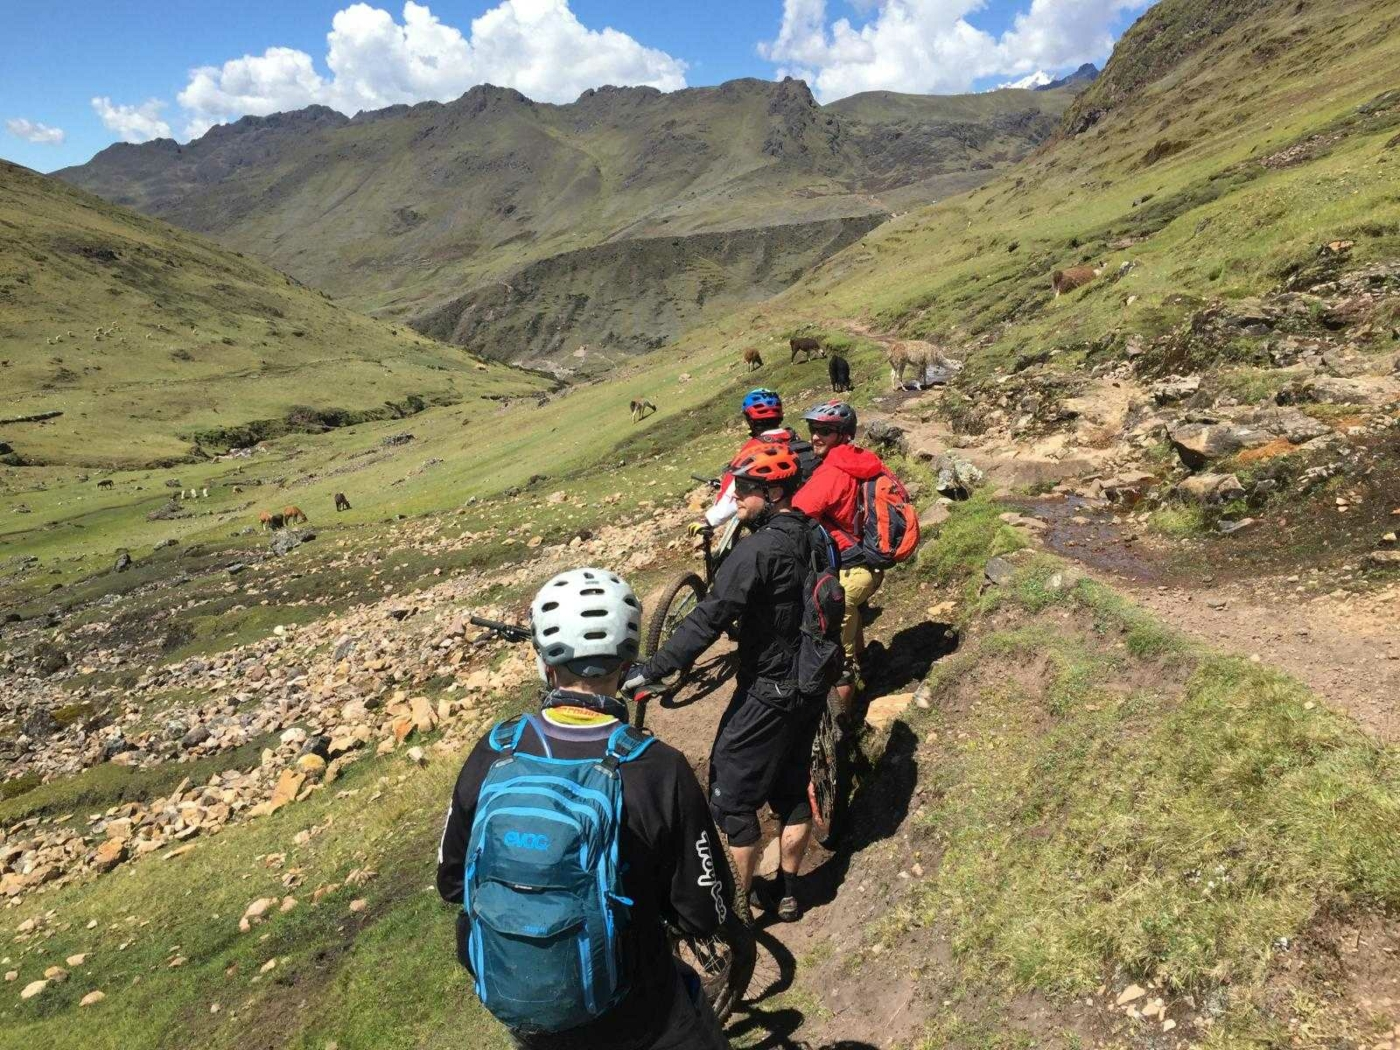 4 people walking their mountain bikes on a narrow rocky mountain path surrounded by grassy hills and alpacas dotting the hillside